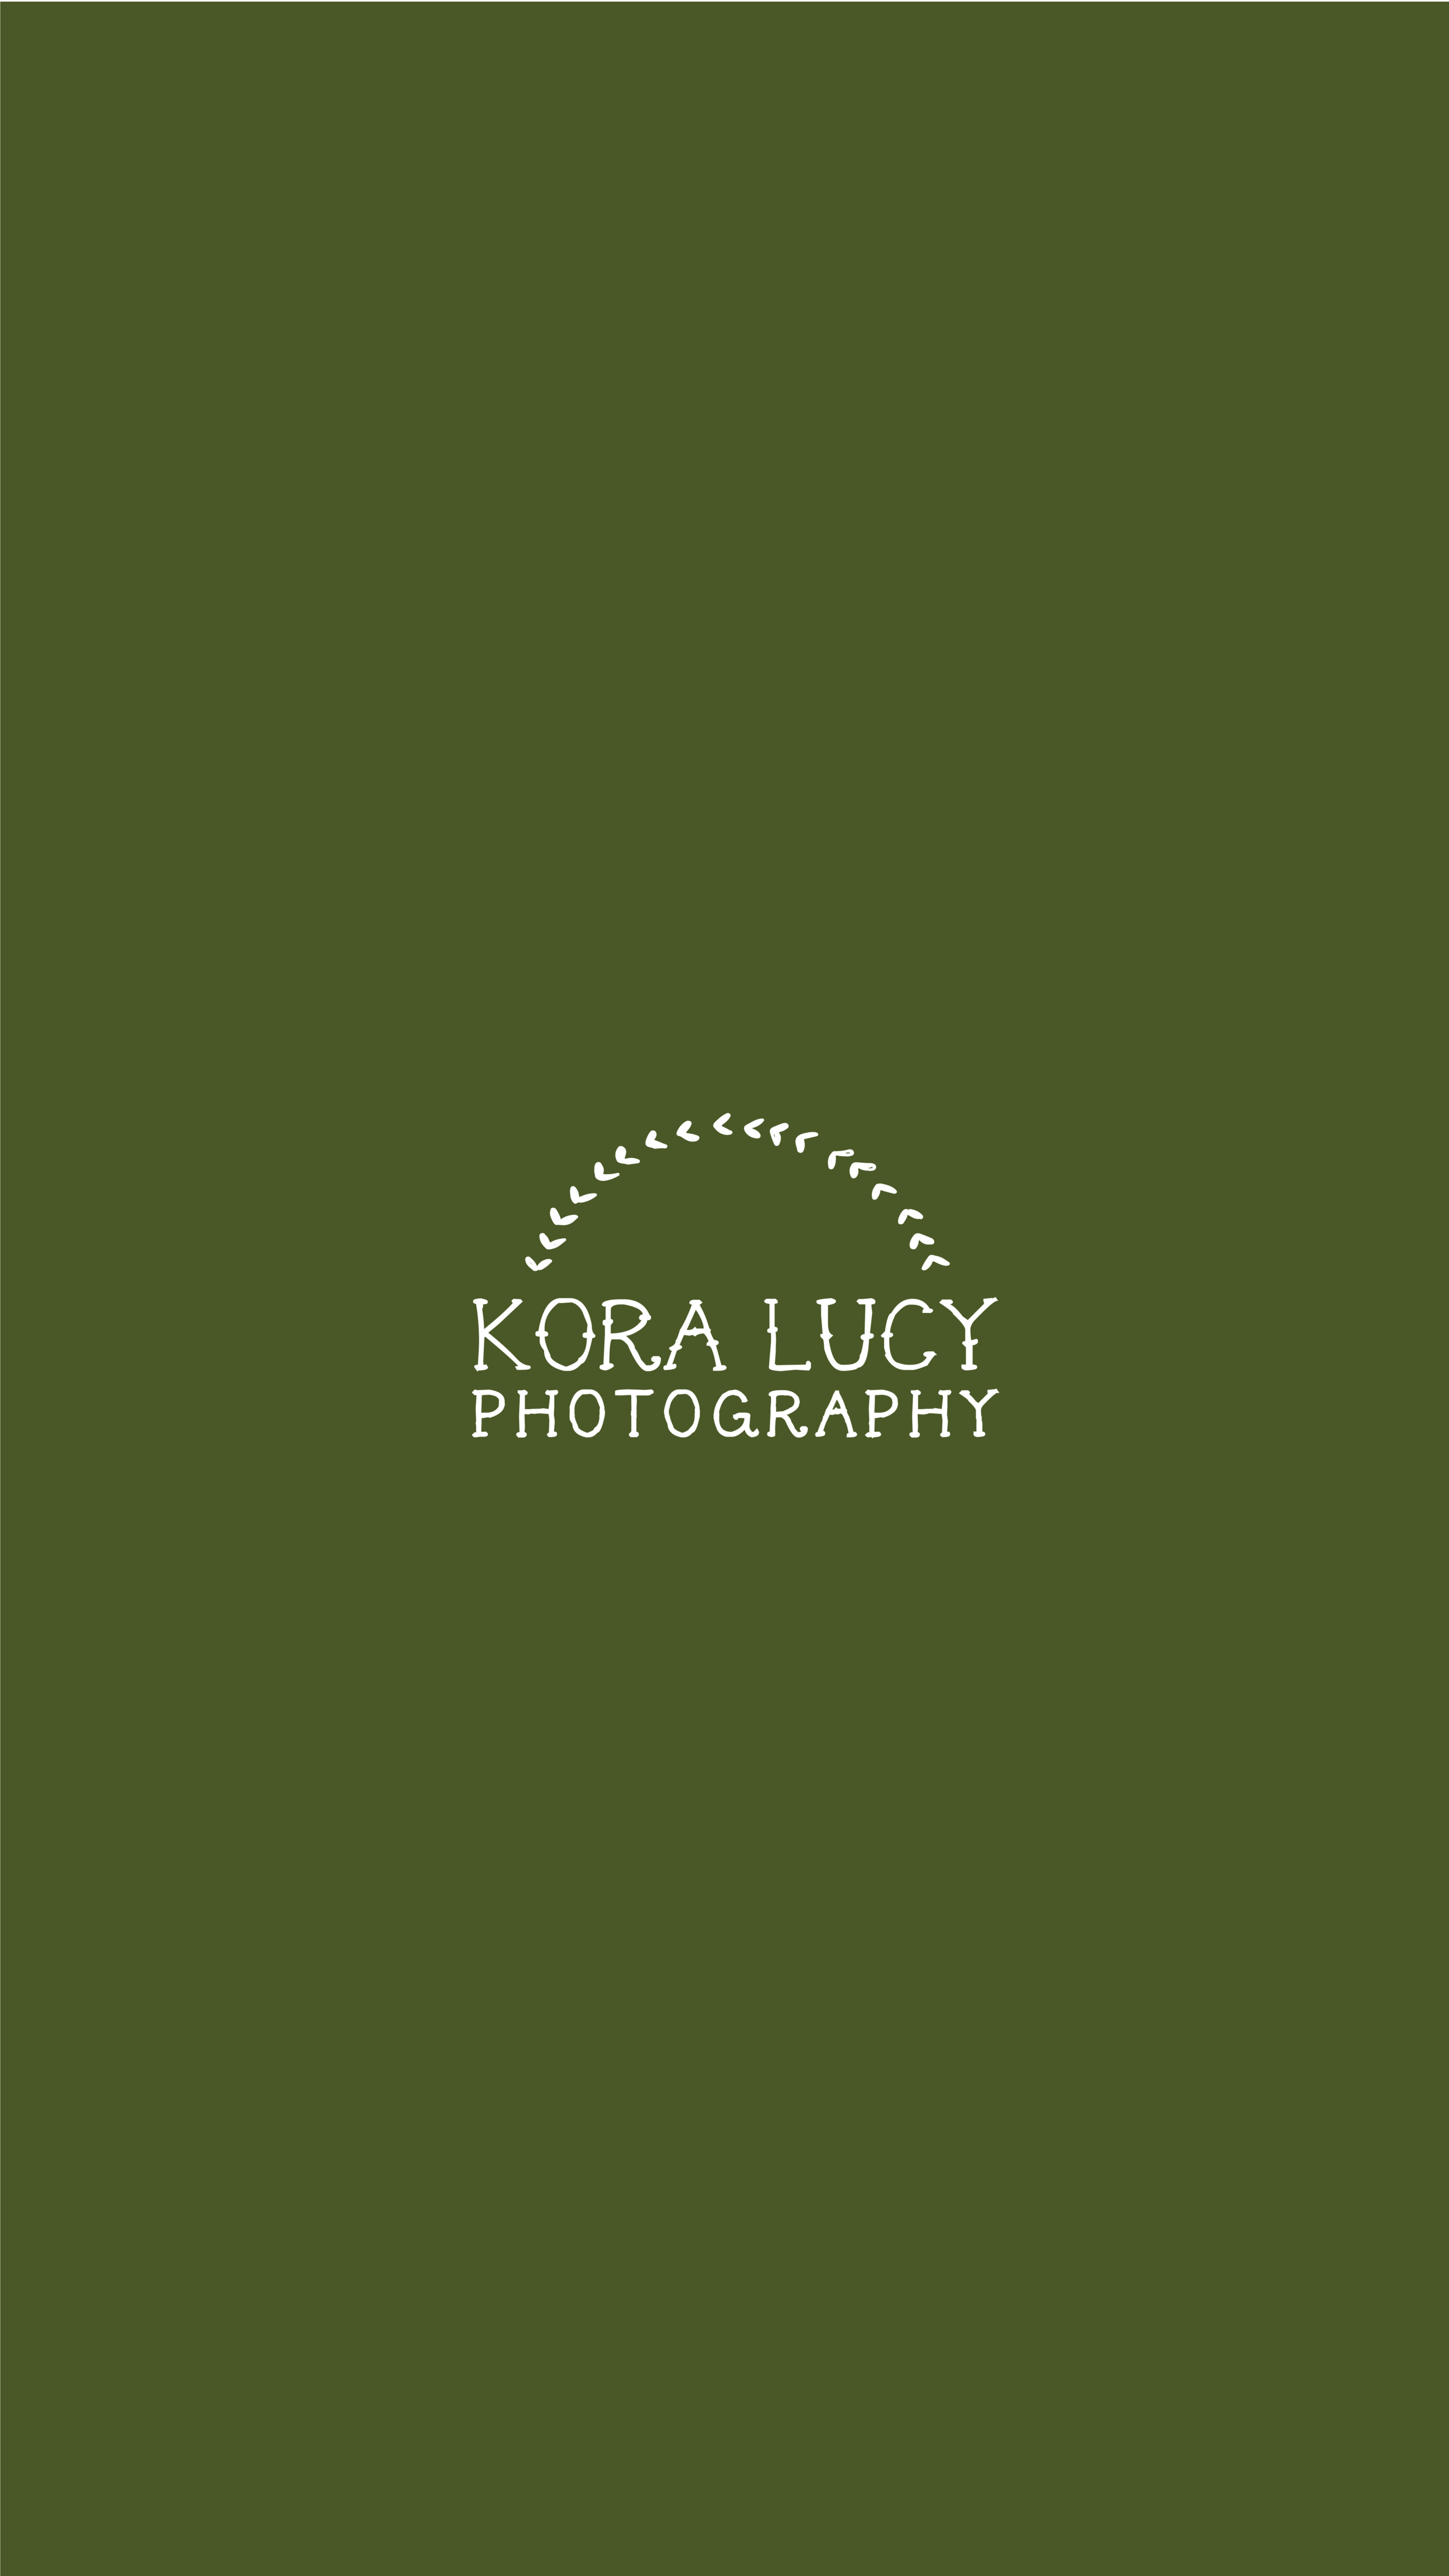 kora-lucy-photography-blank-paige-design-4